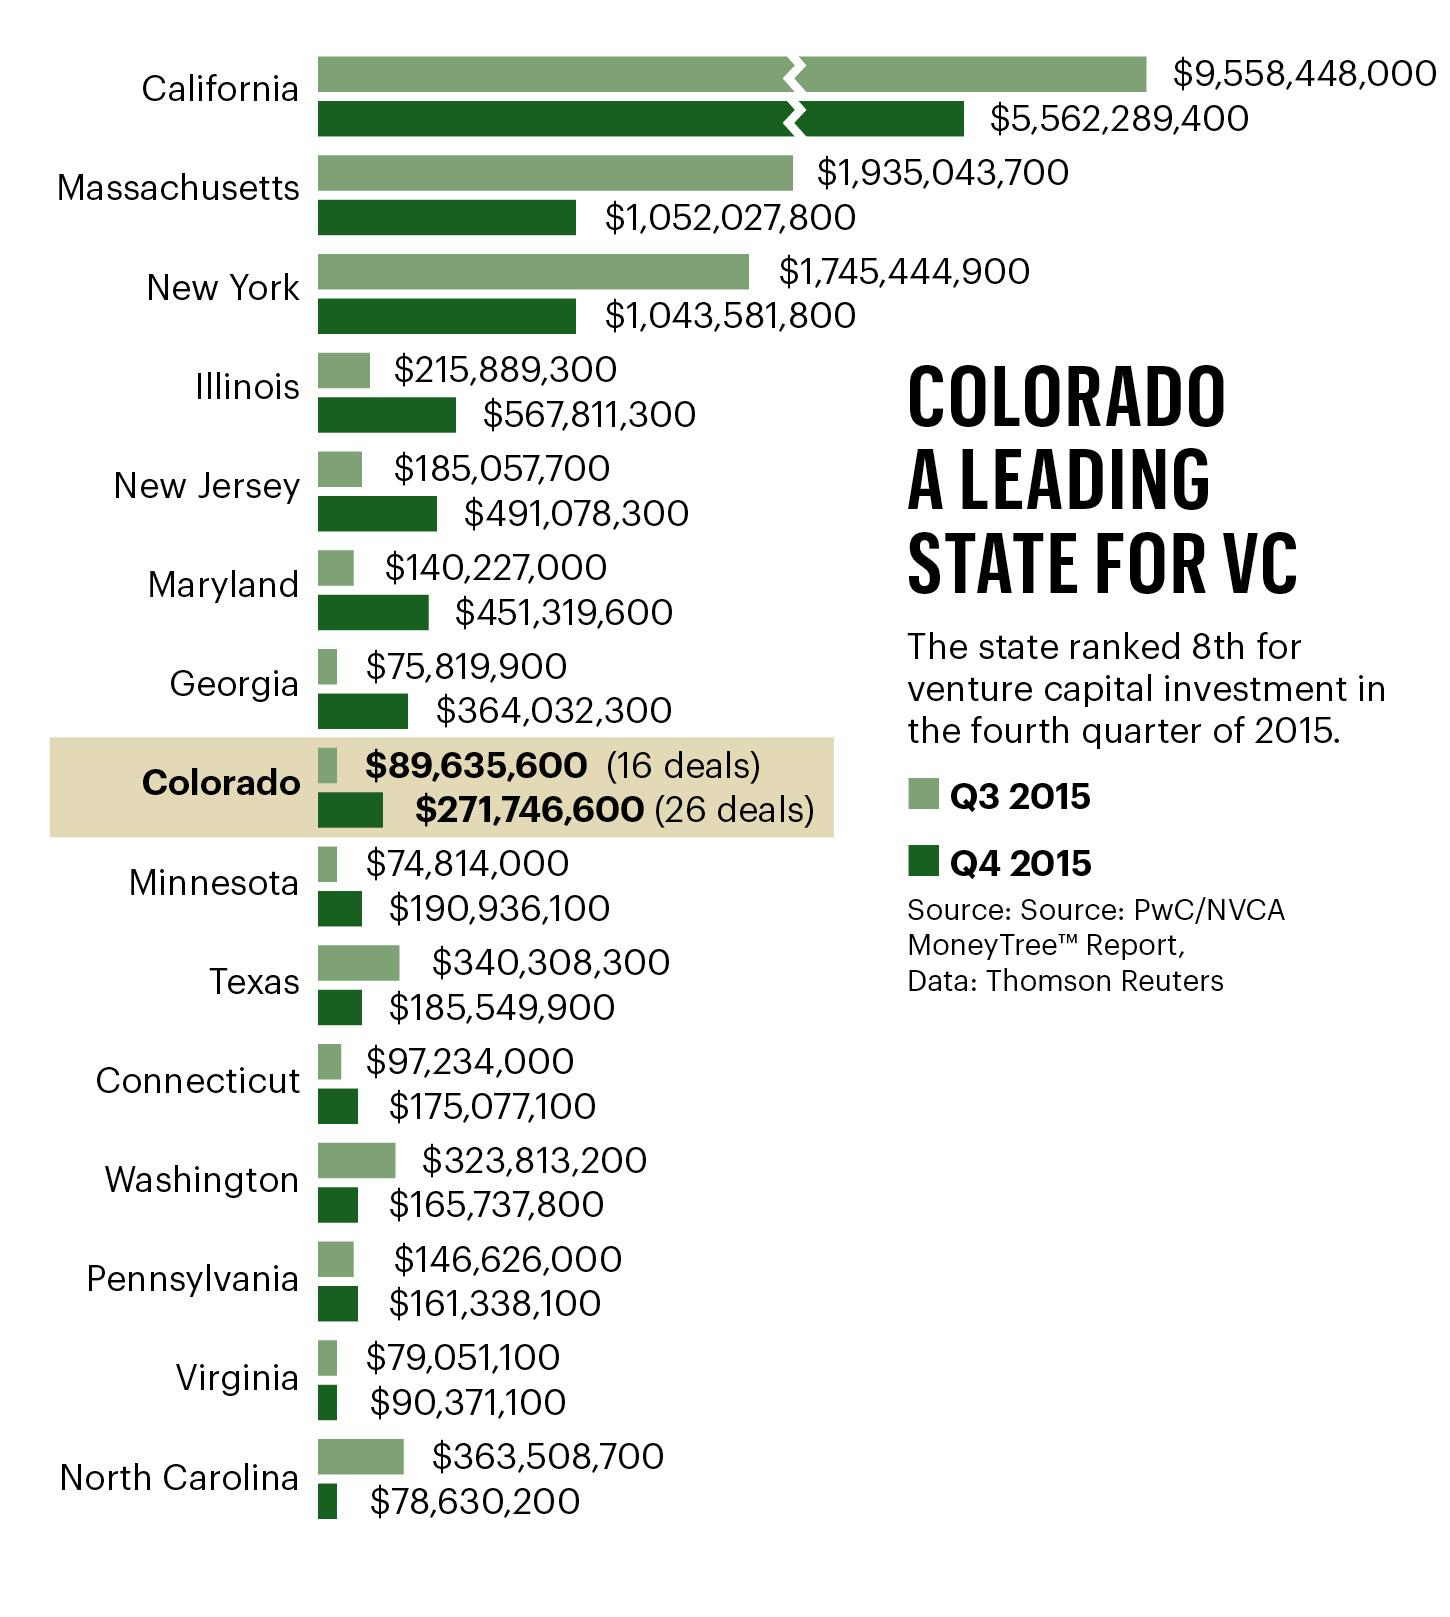 Denver Business Journal News: Getting The Eye Of Venture Capitalists